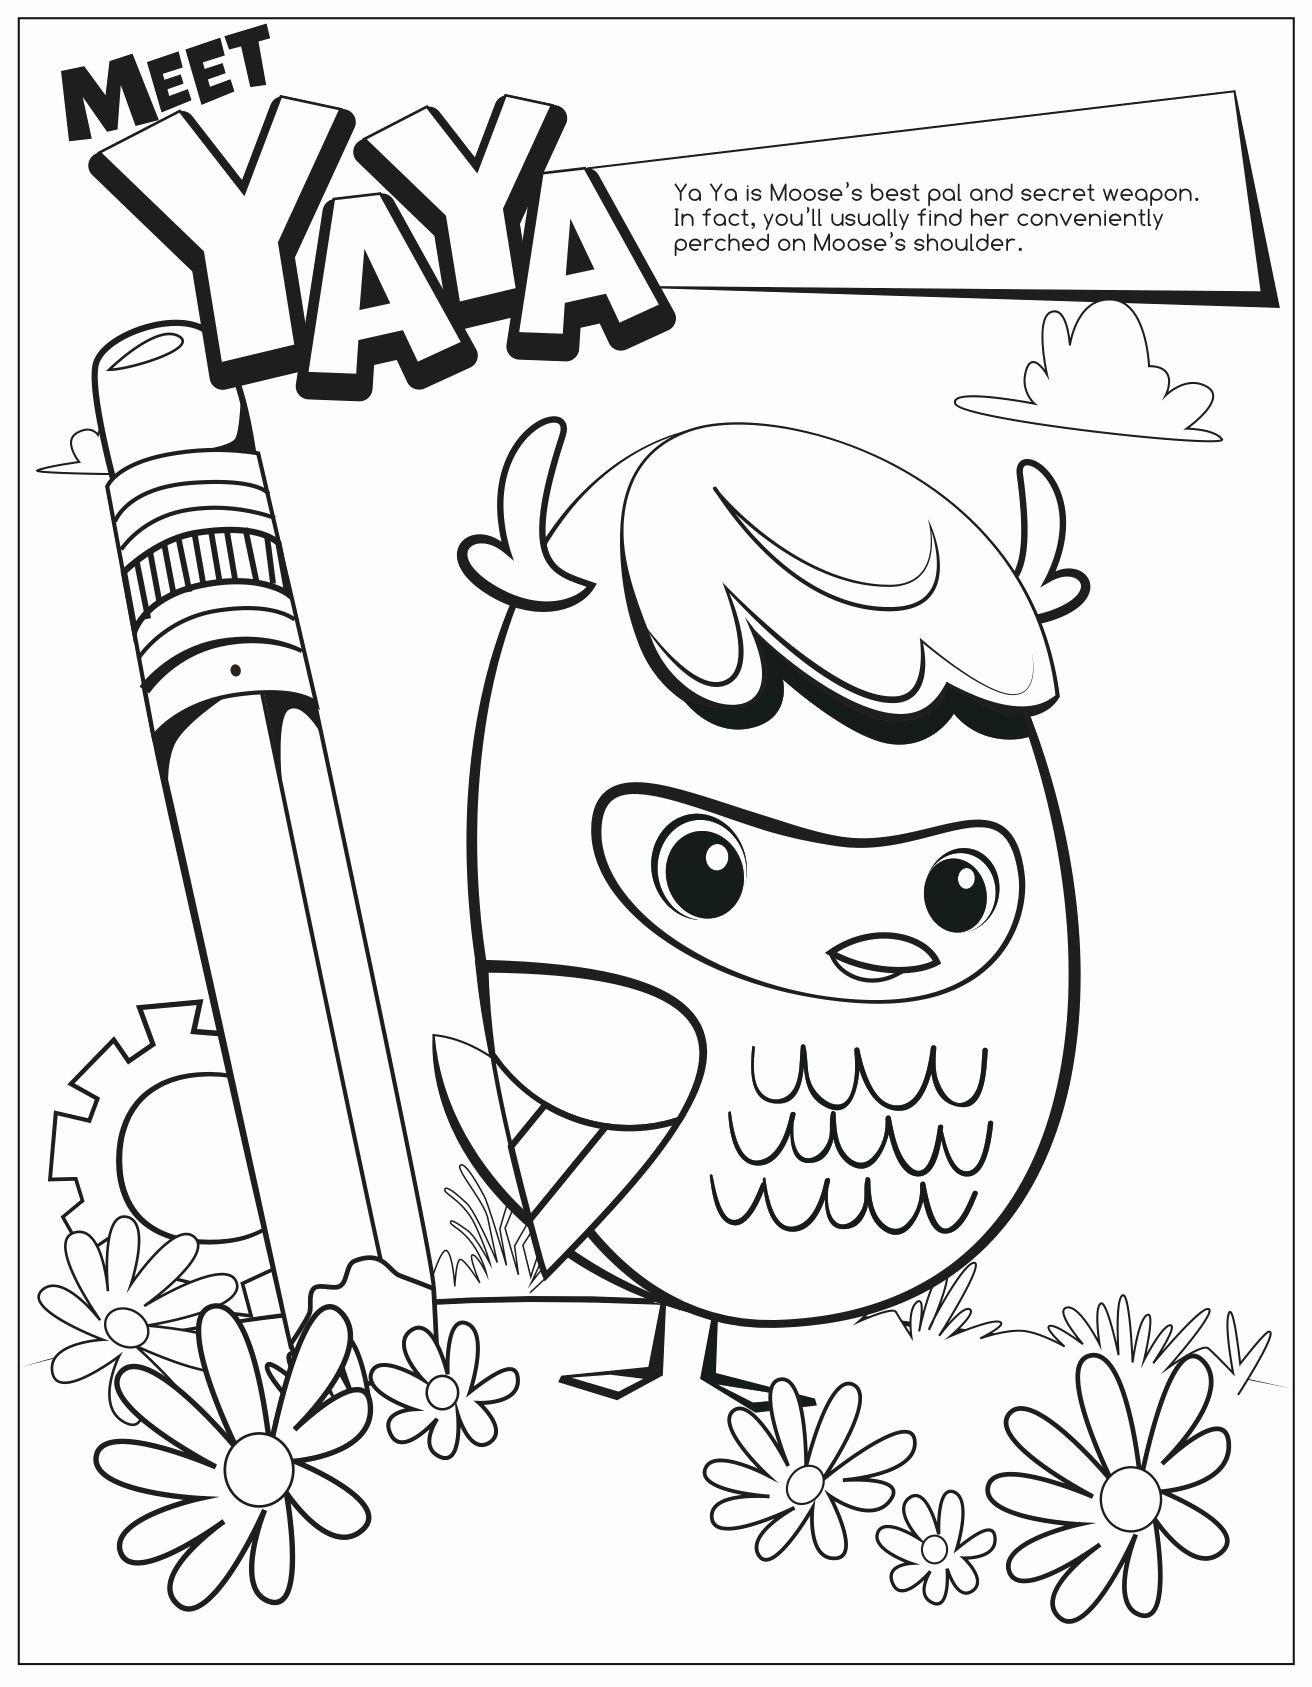 Coloring Pages For 7th Graders At Getcolorings